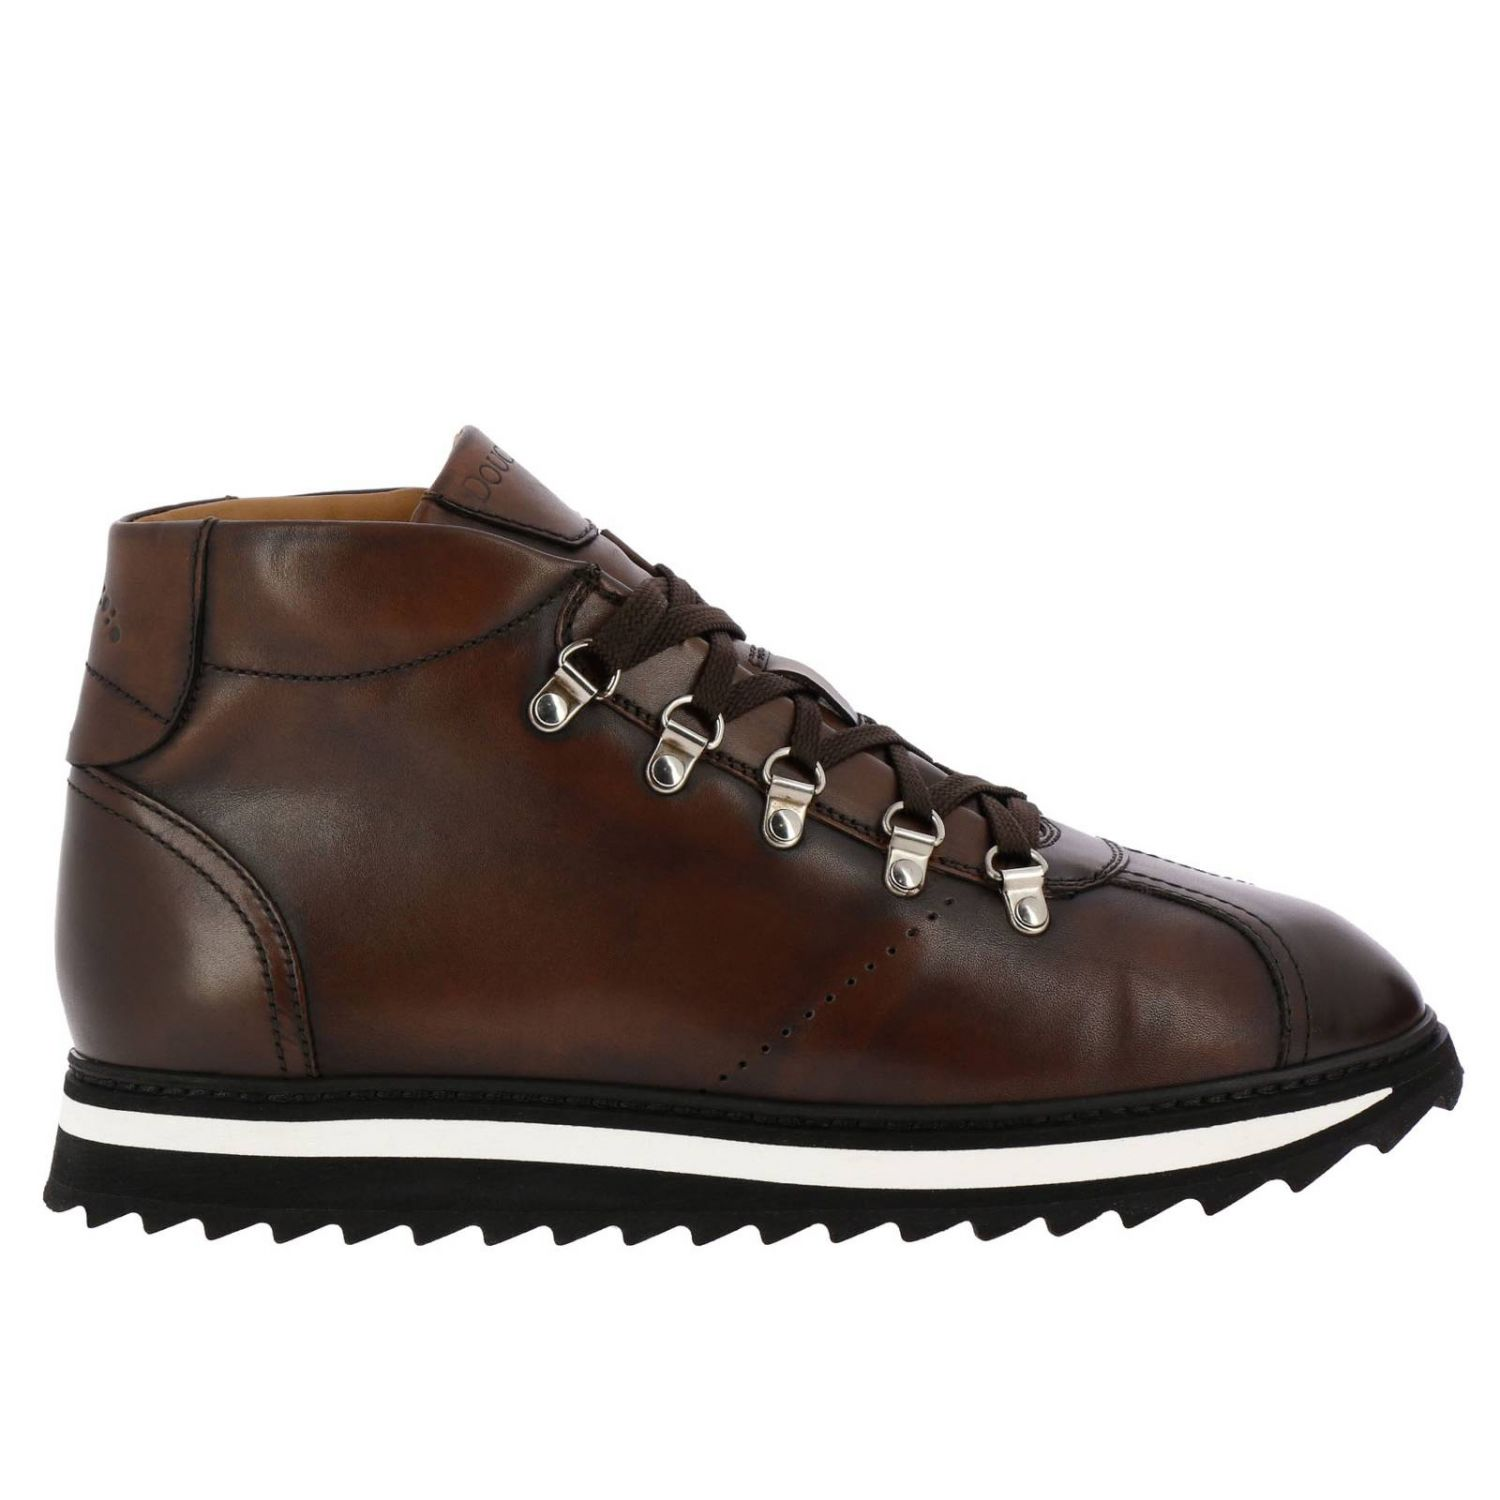 Shoes men Doucal's ebony 1